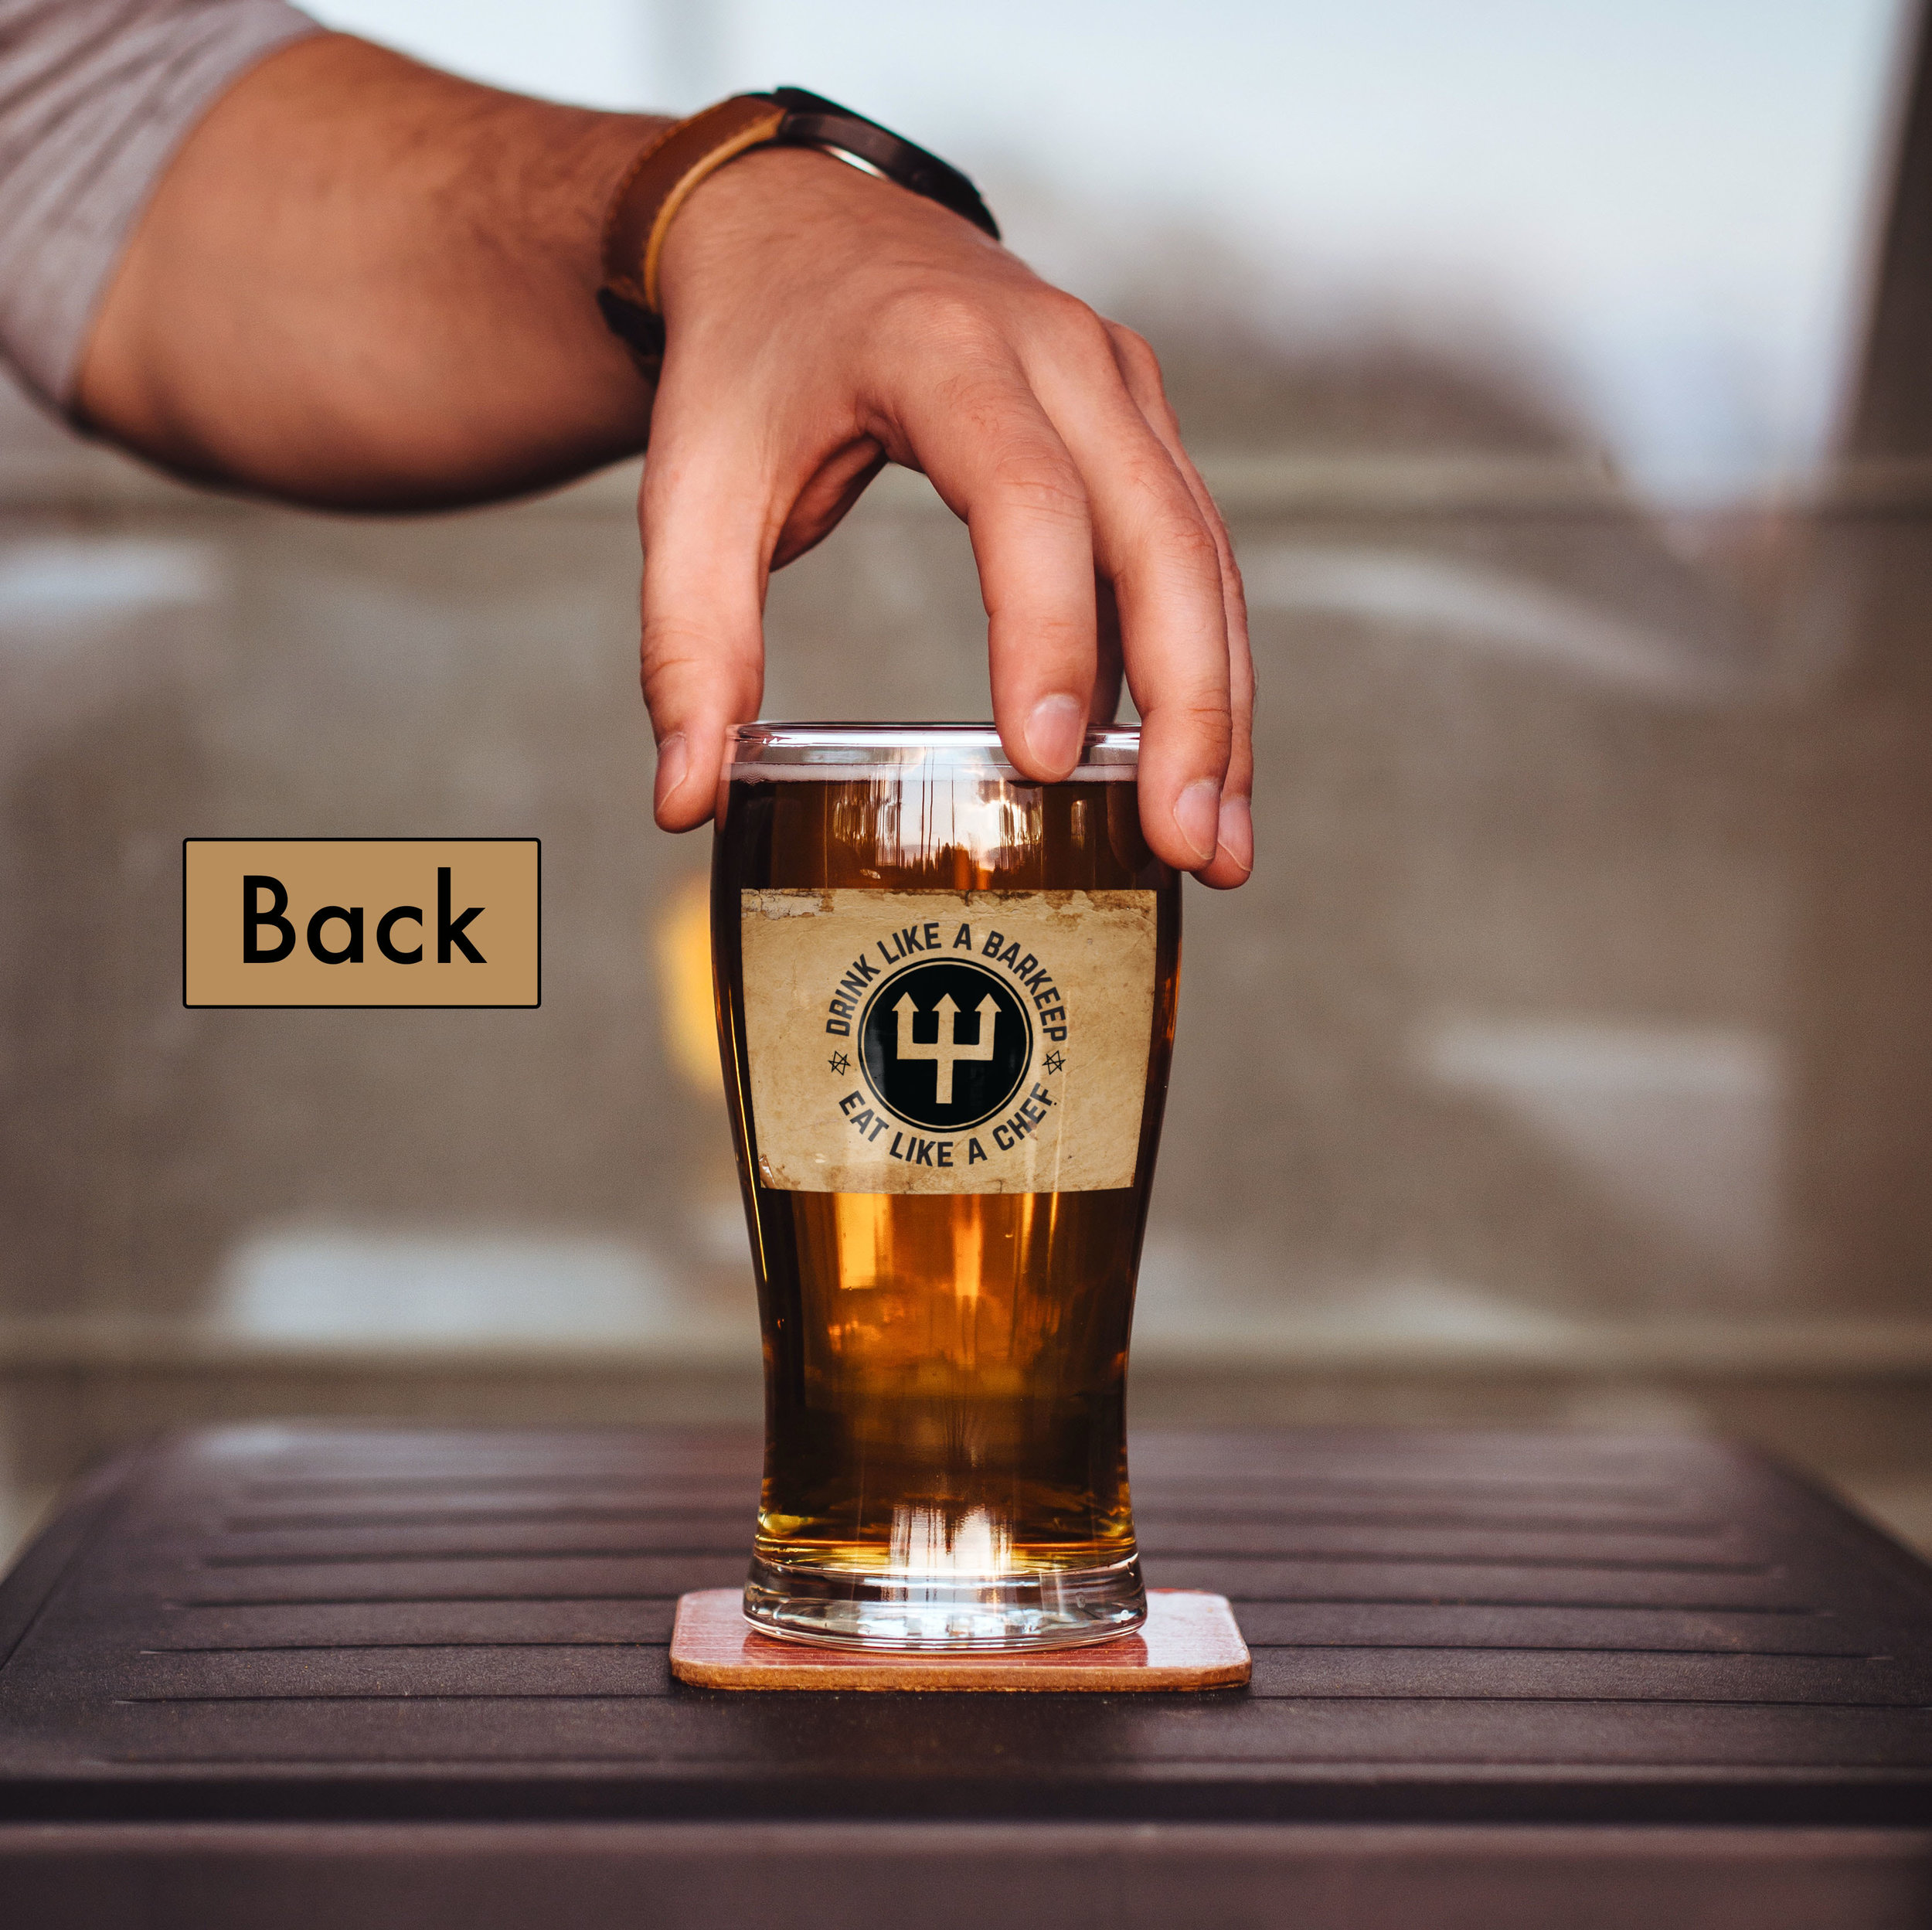 Beer Glass back.jpg